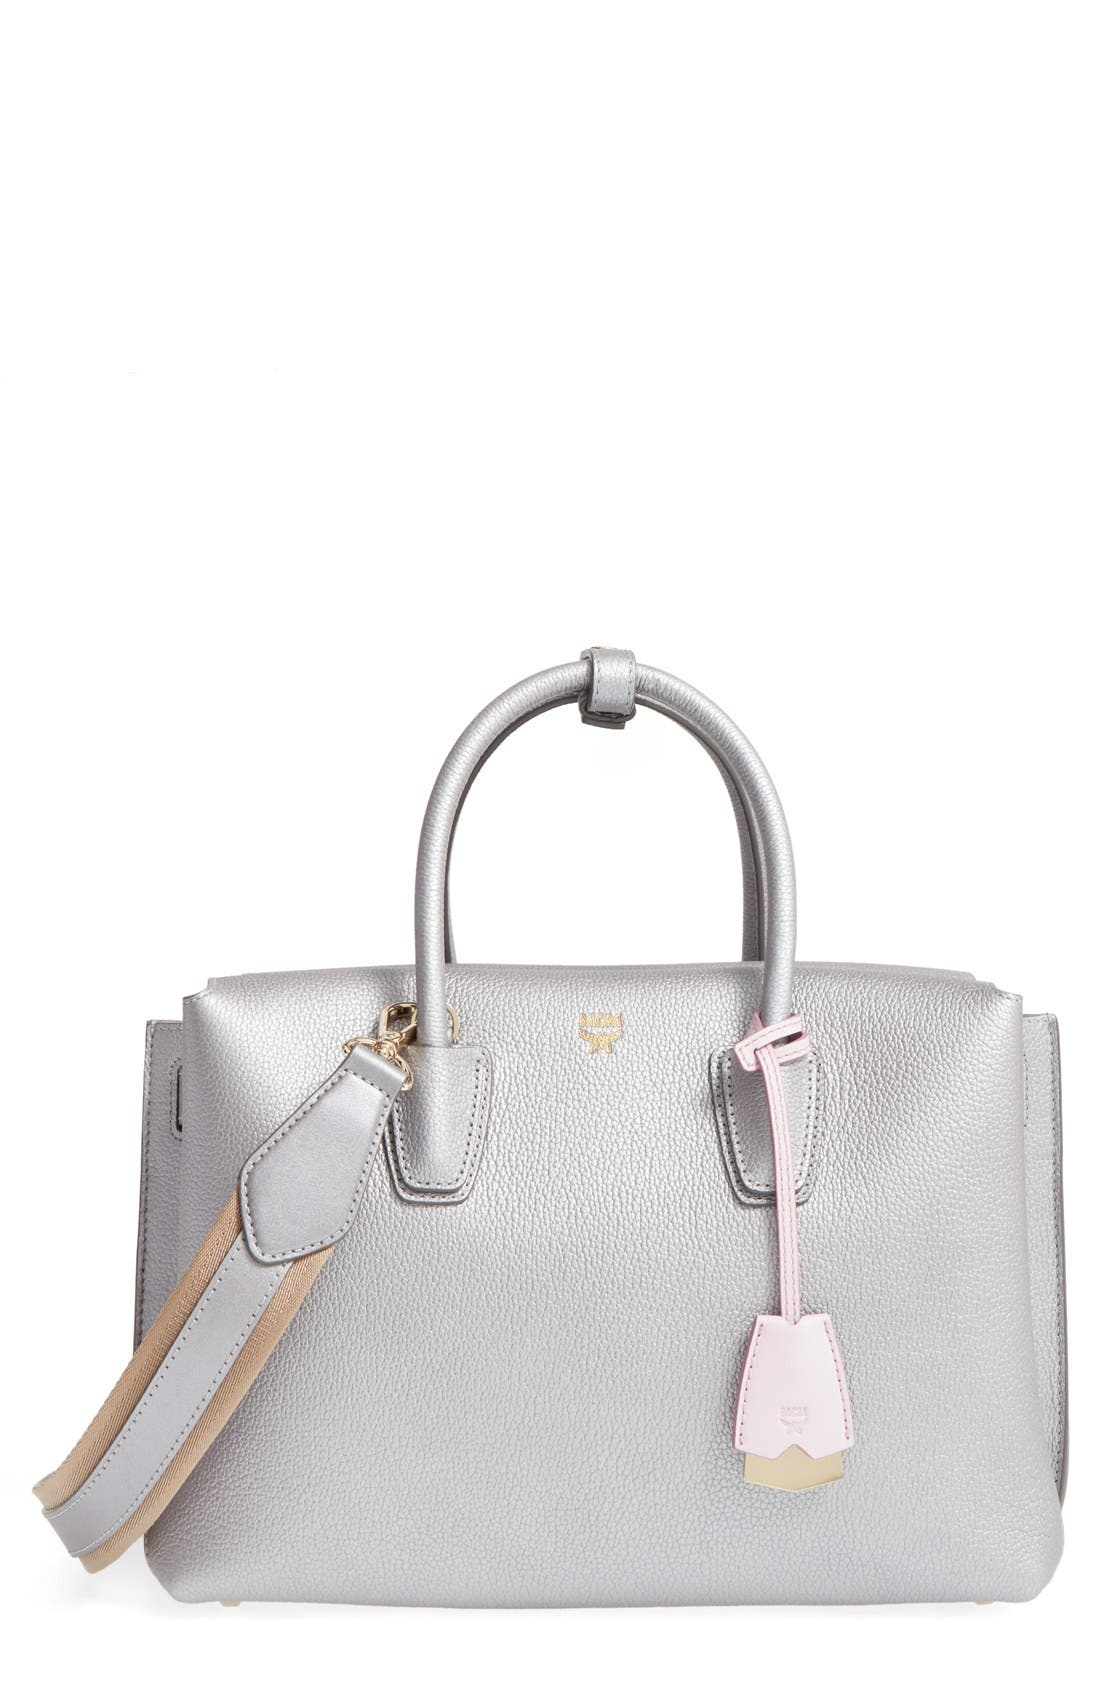 Alternate Image 1 Selected - MCM Medium Milla Leather Tote